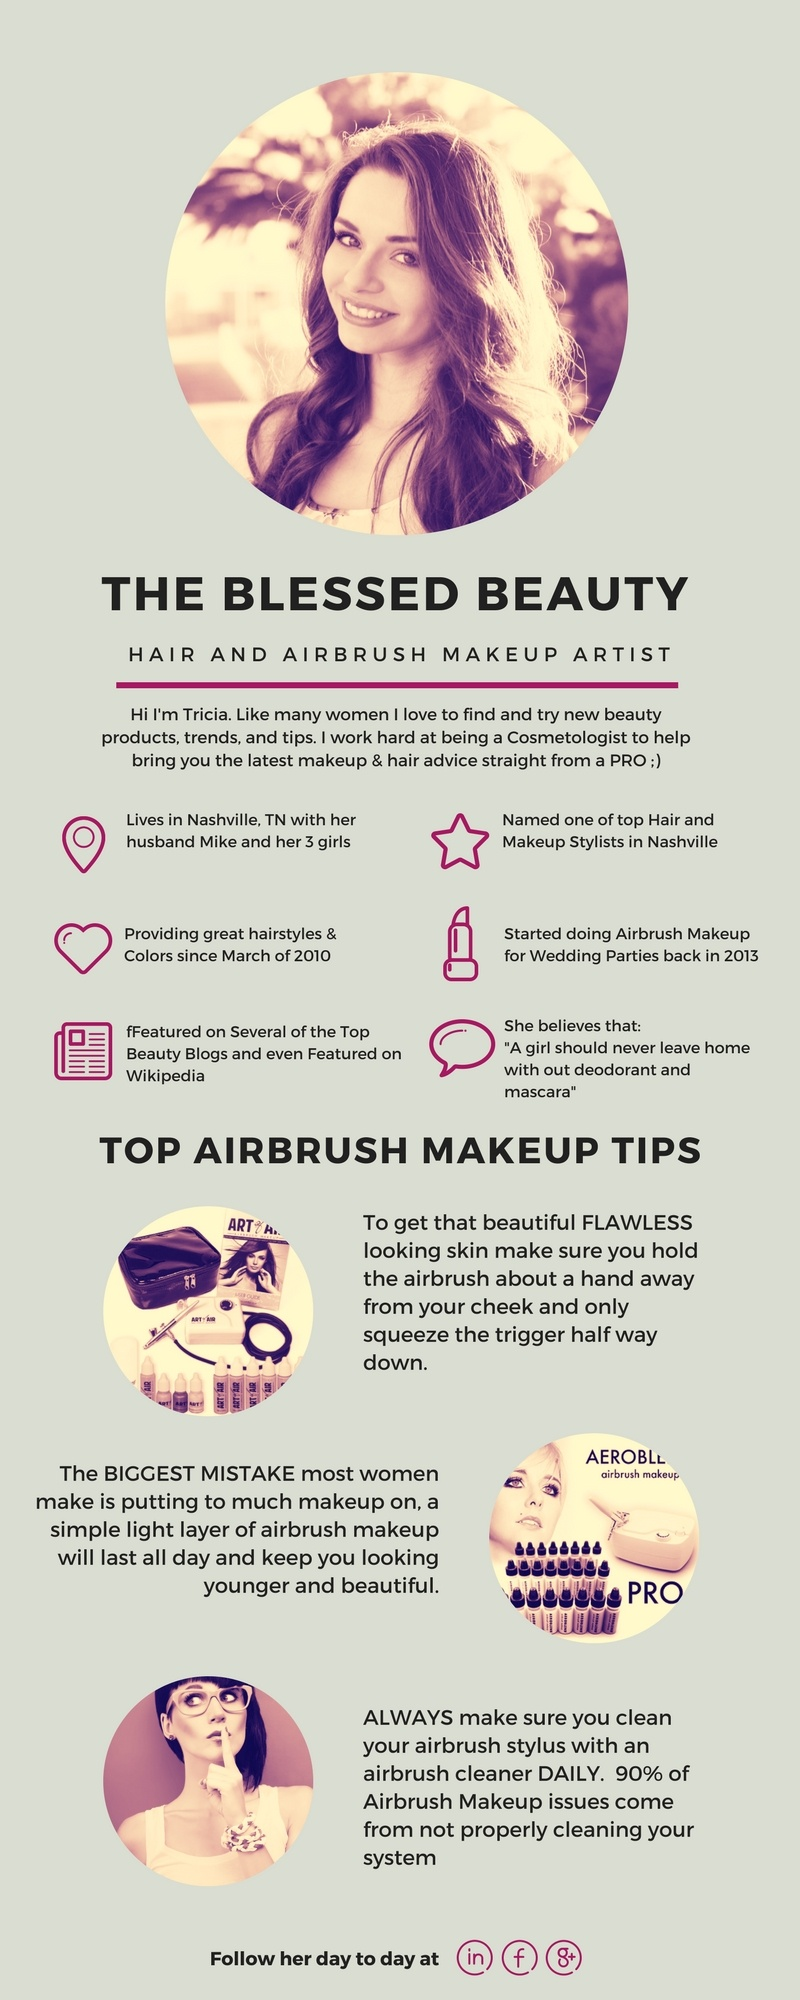 Airbrush makeup Tips and tutorials